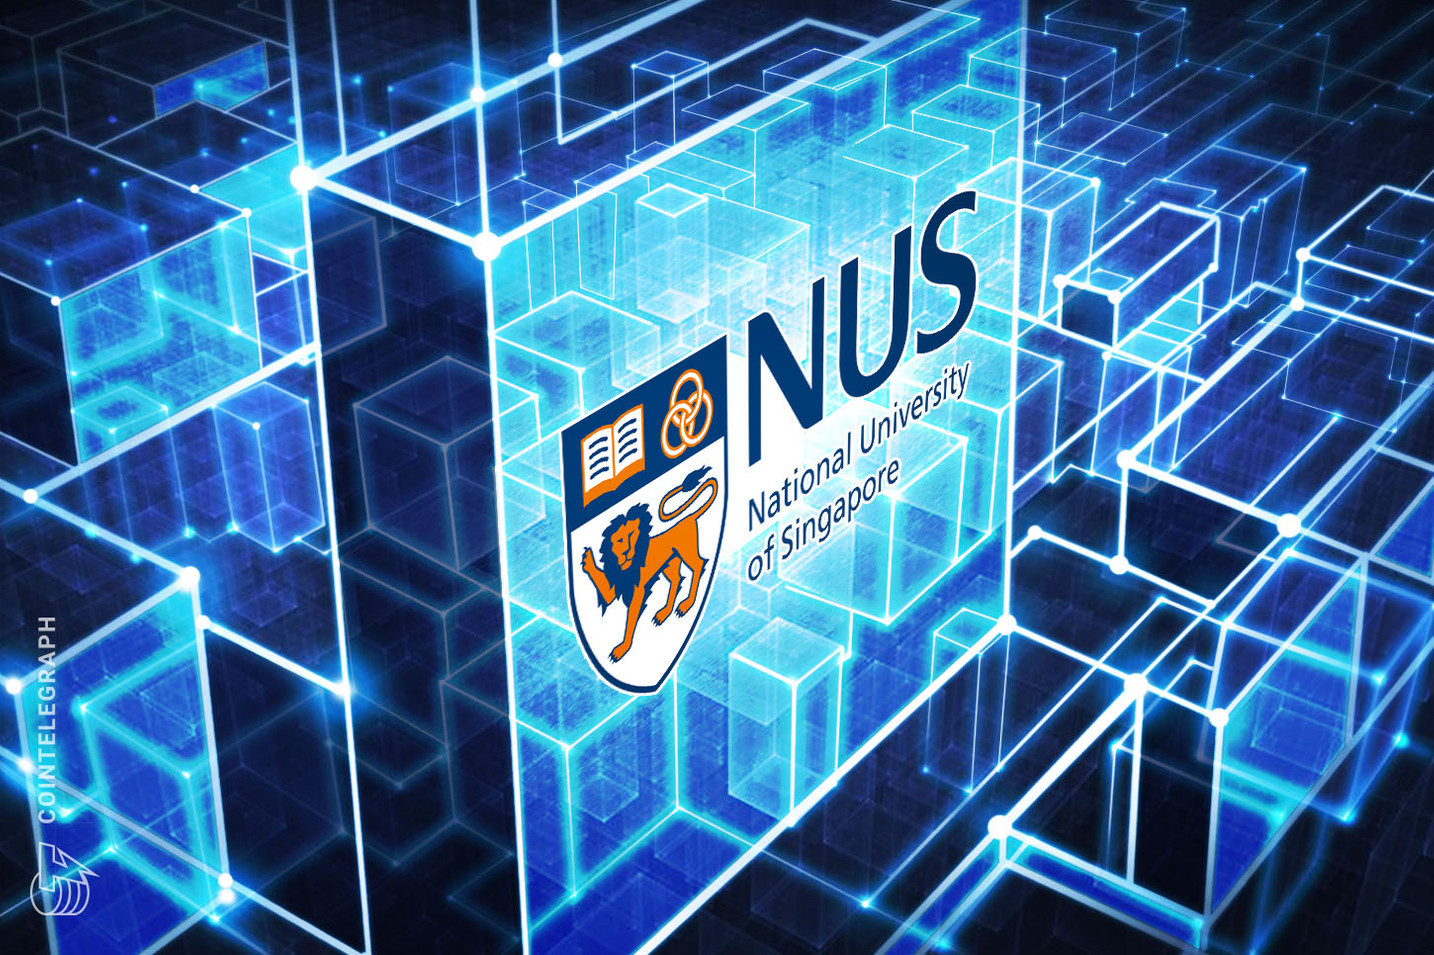 National University of Singapore and Chinese Tech Firm to Research Blockchain: Report